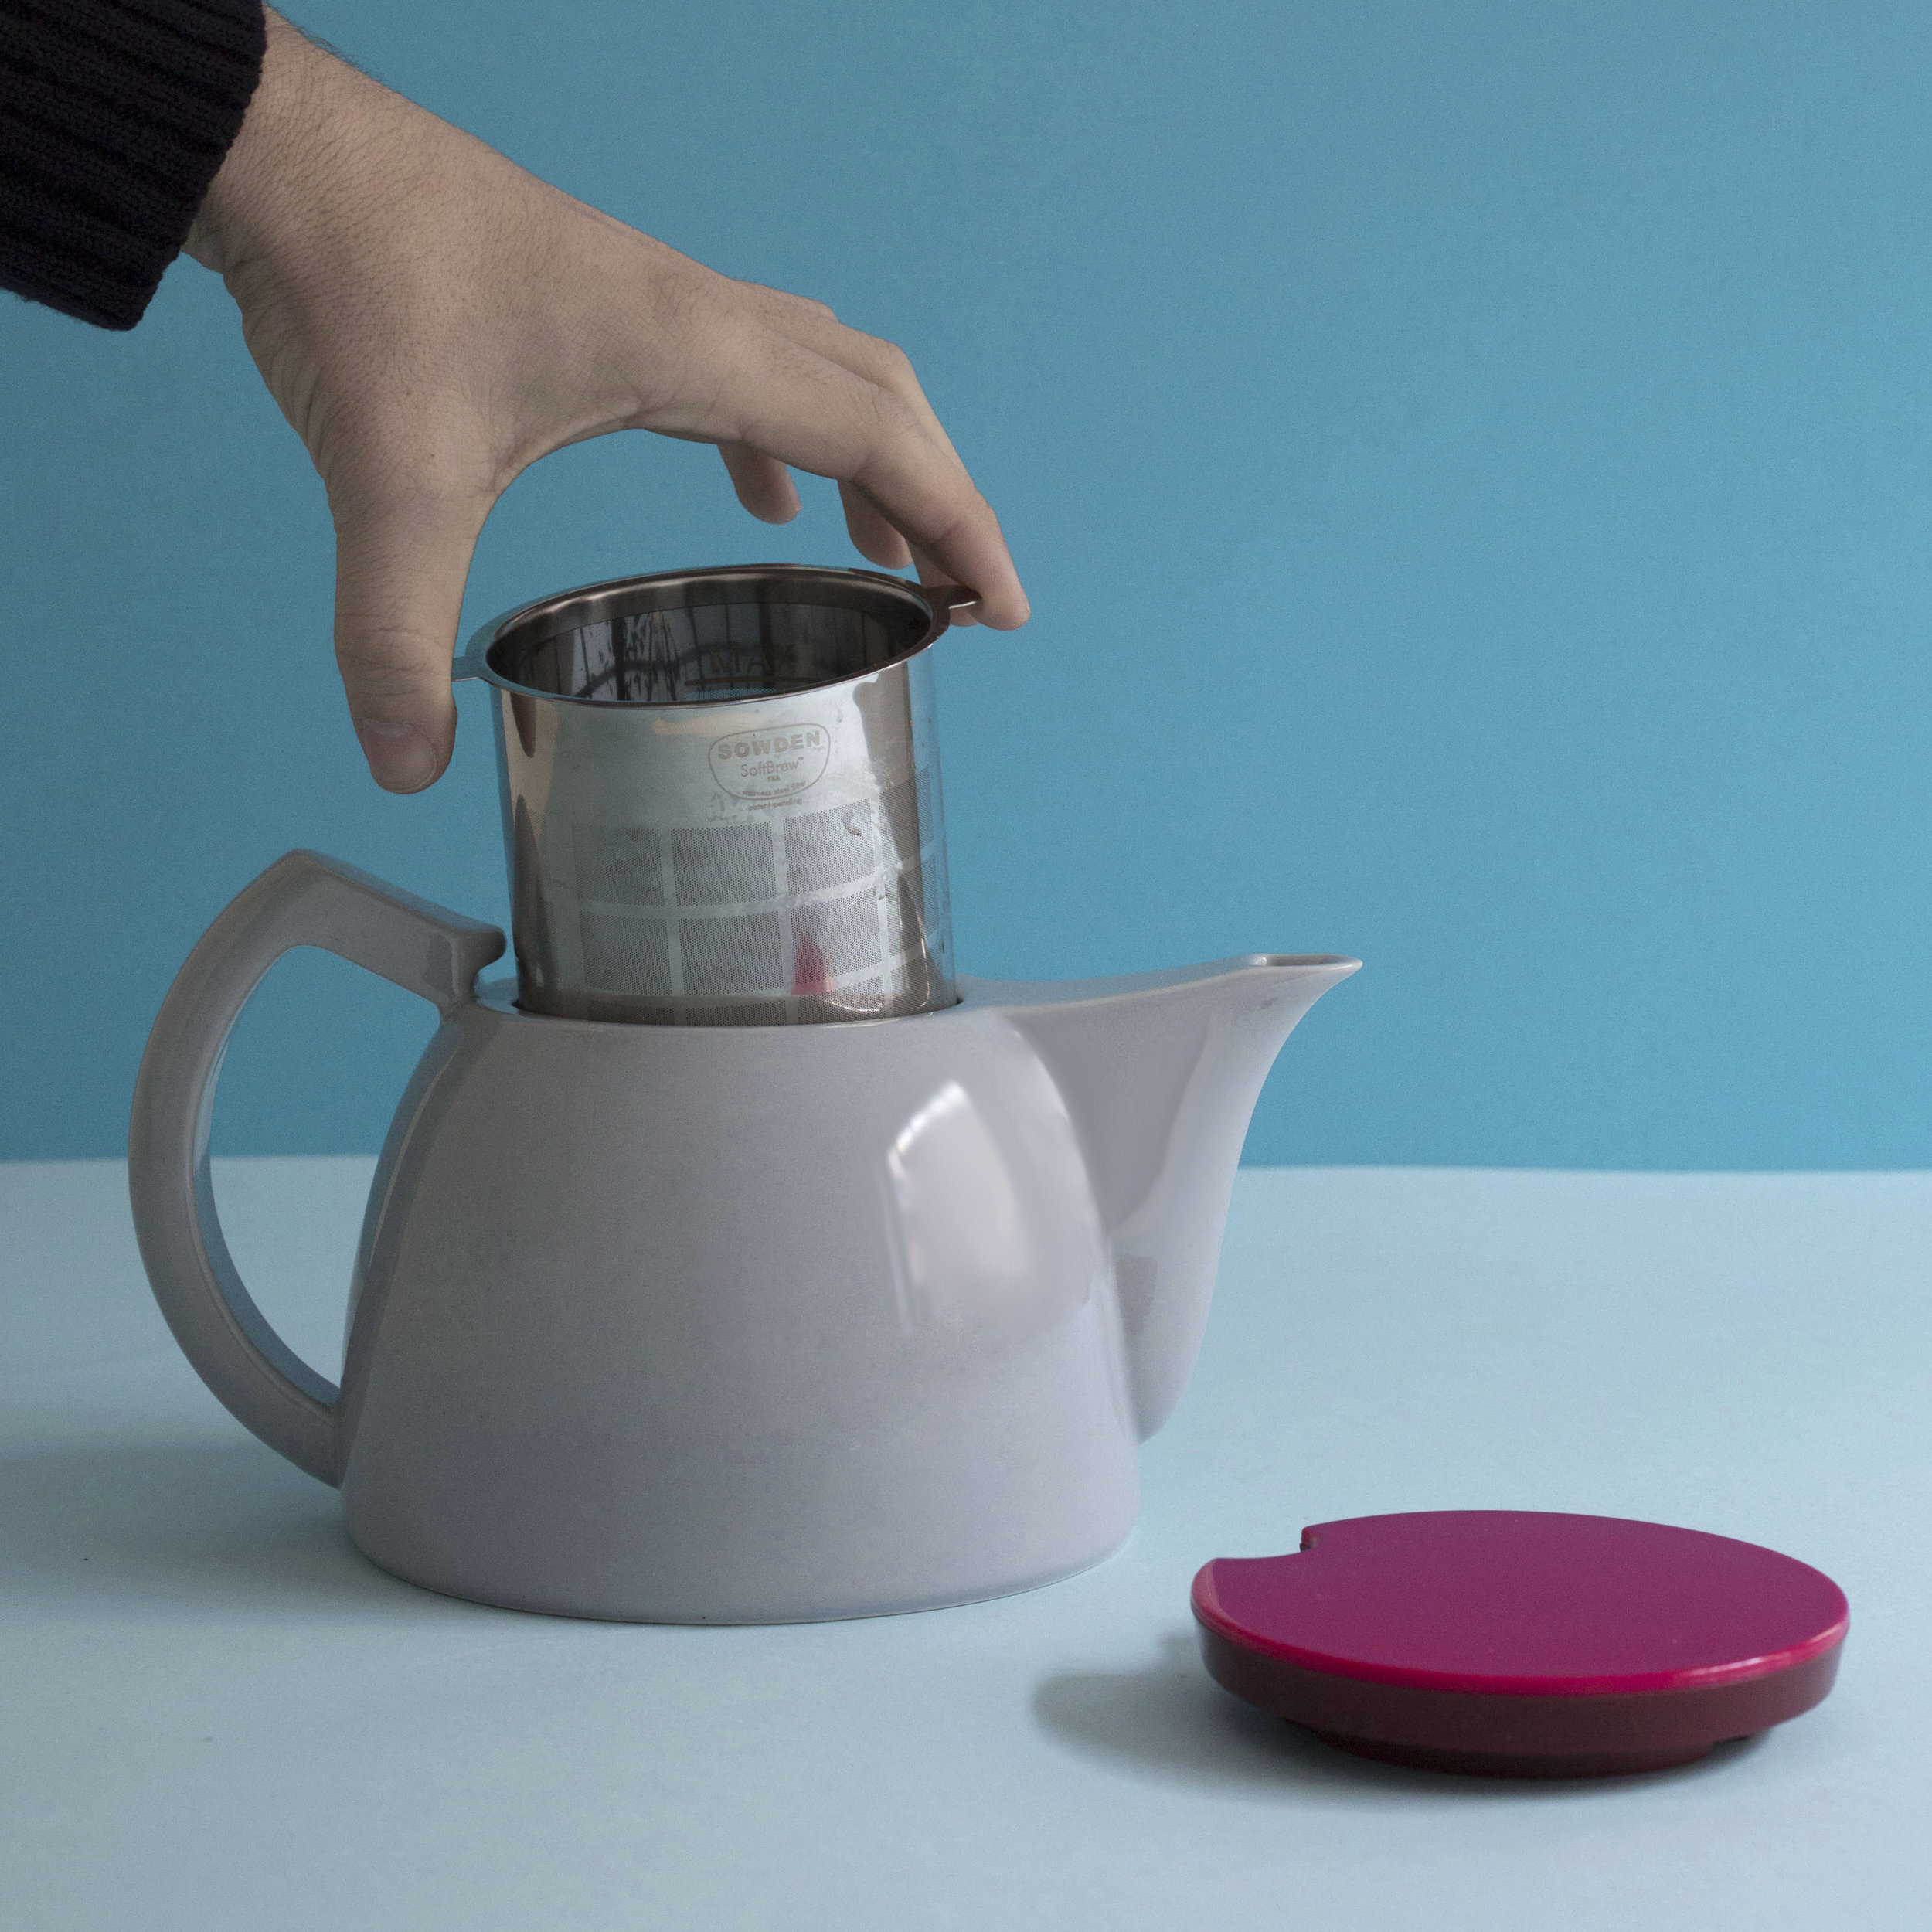 Take out the filter with the used tea leaves -